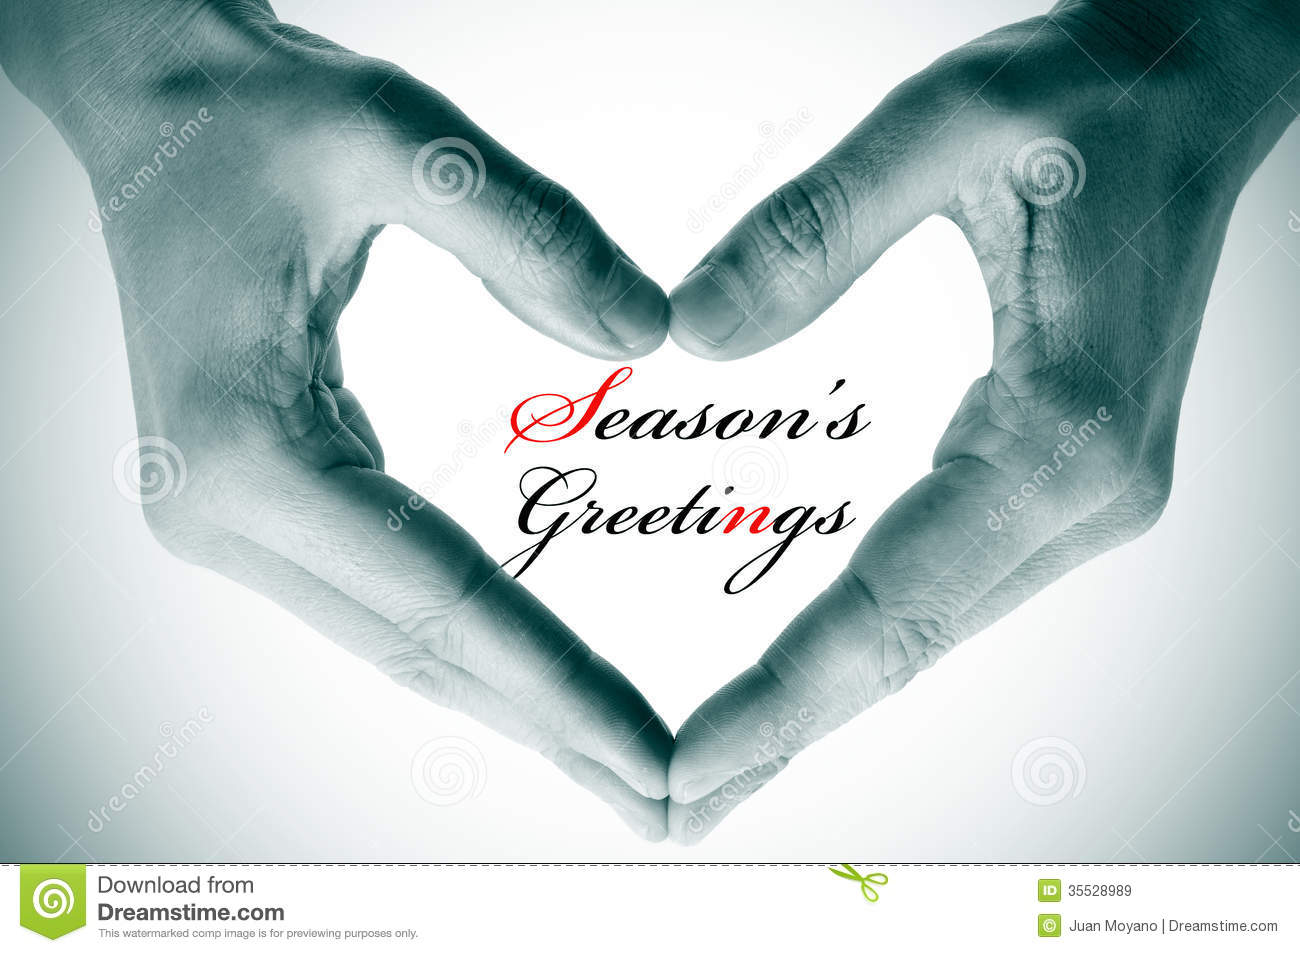 Seasons greetings stock image image of gesture seasonal 35528989 seasons greetings royalty free stock photo m4hsunfo